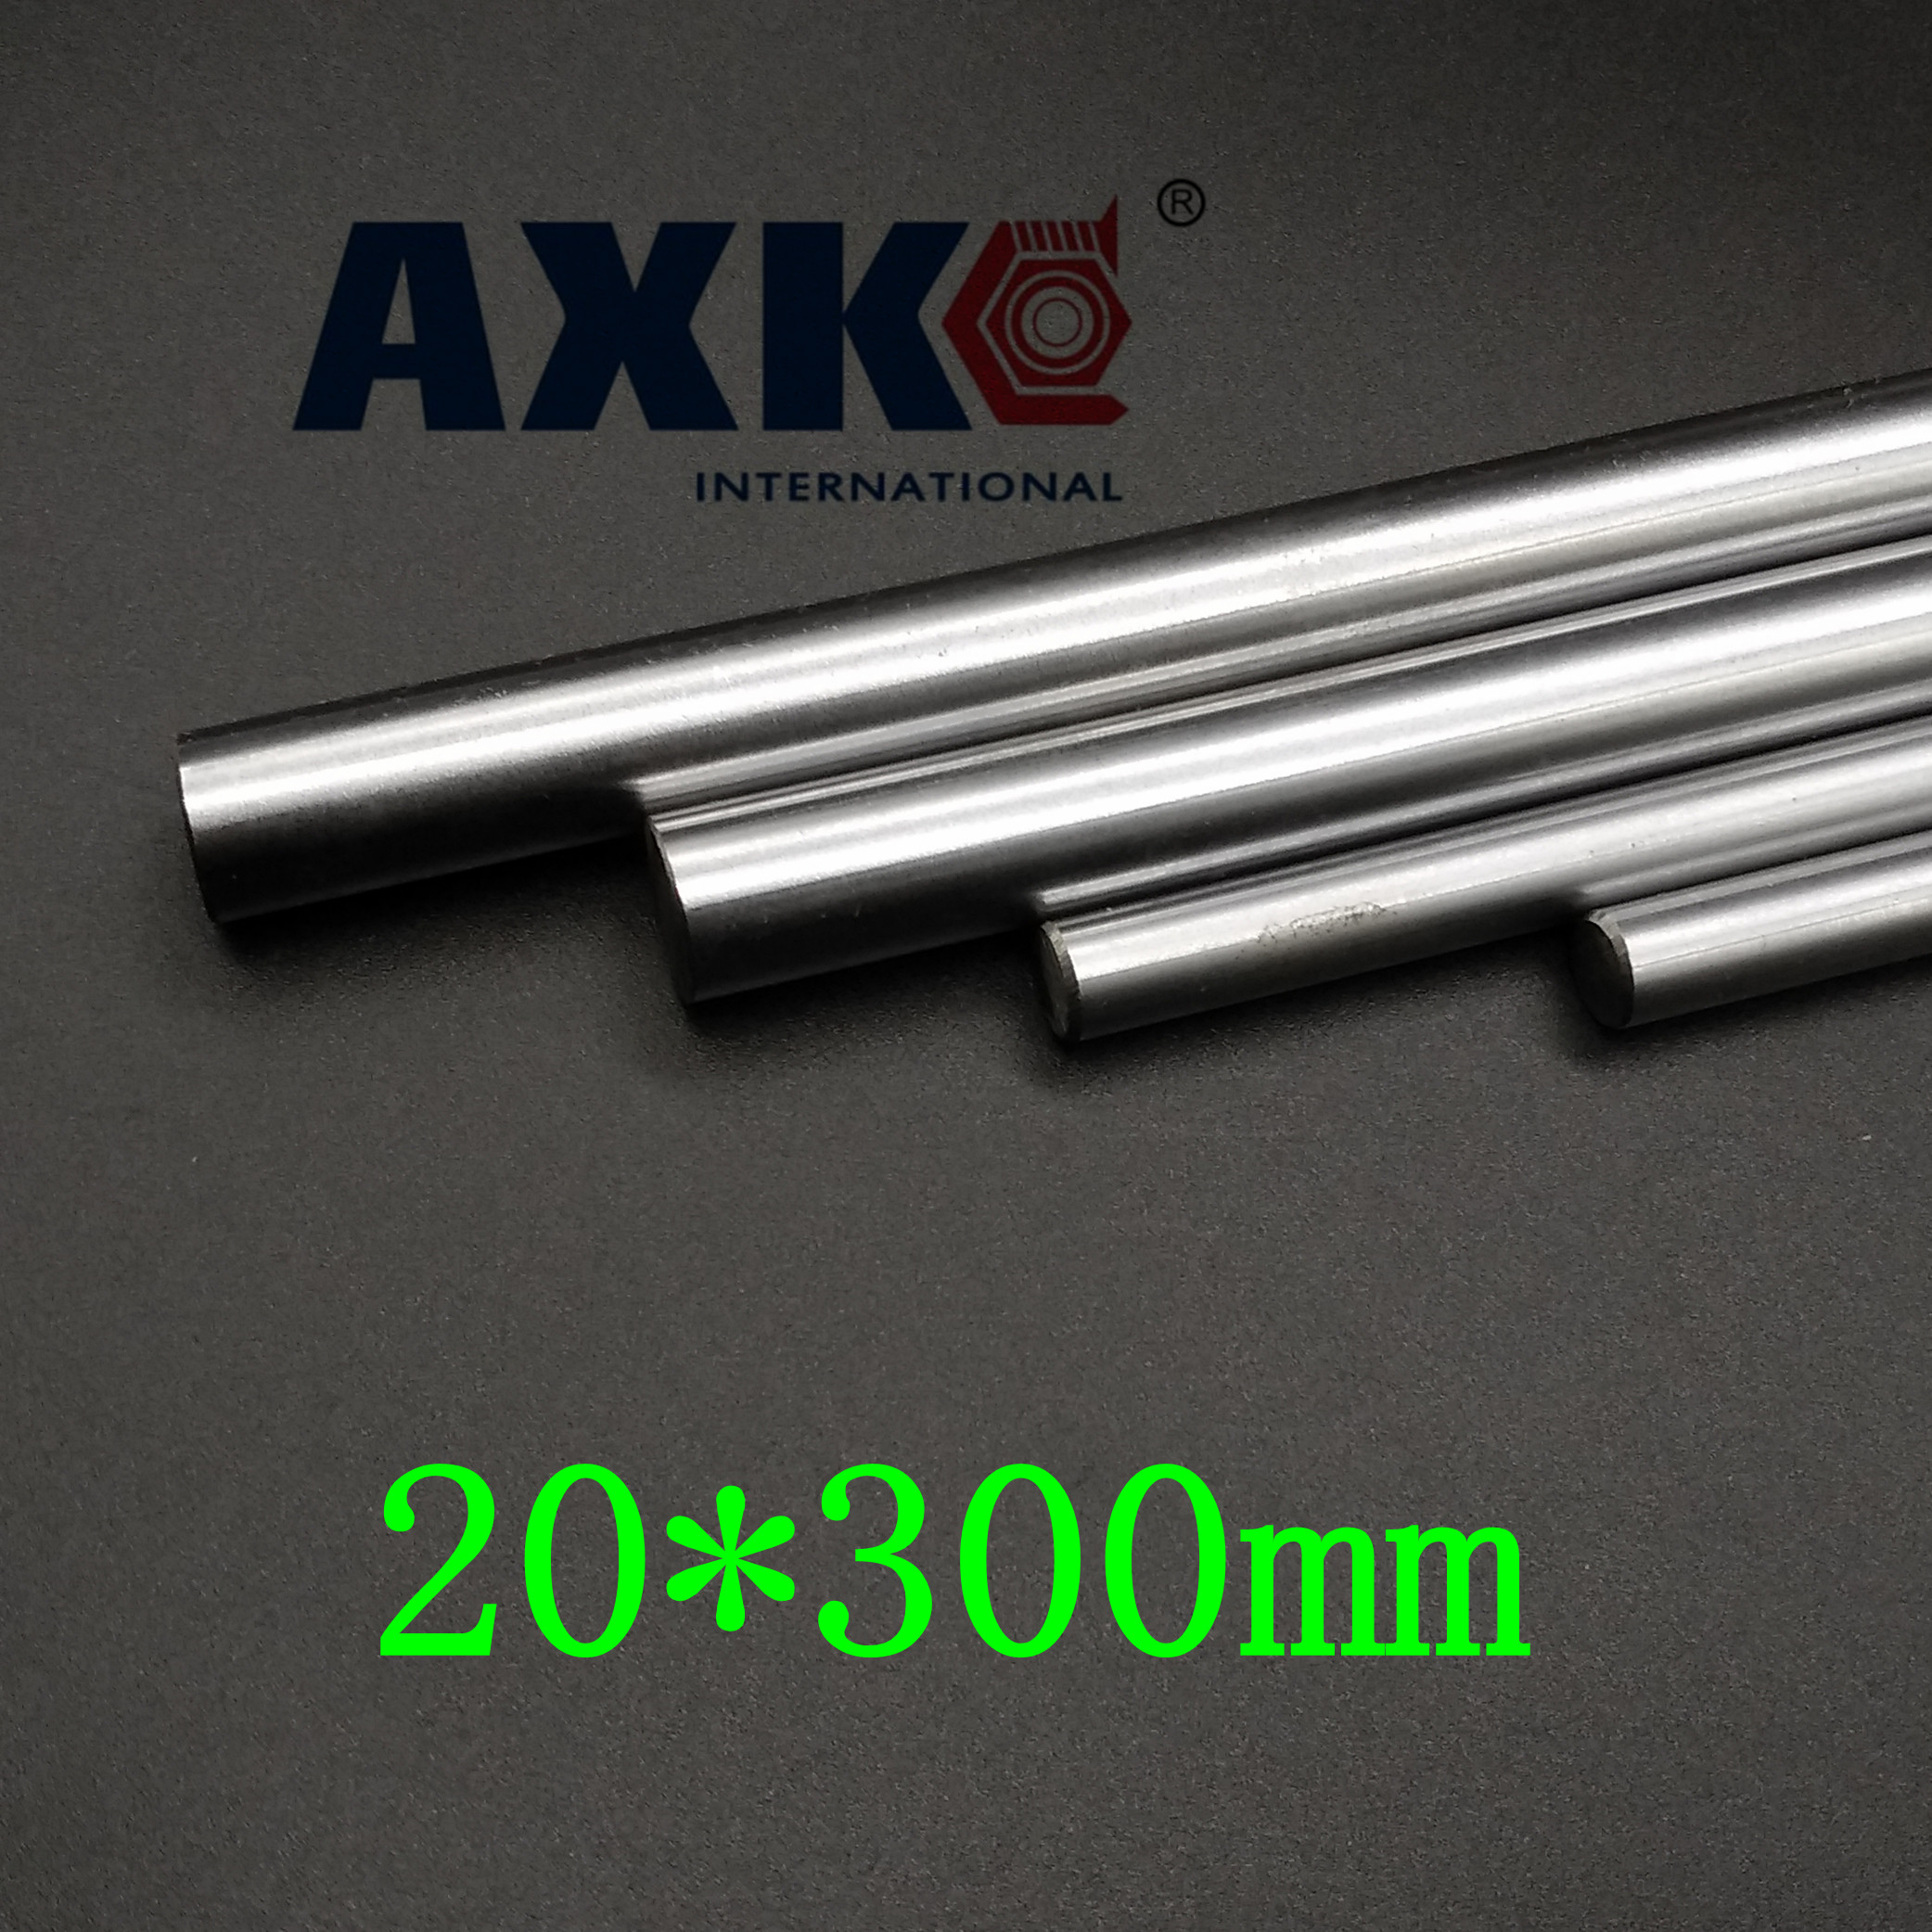 Axk 2pcs/lot 3d Printer Rod Shaft Wcs 20mm Linear Shaft 300mm Chrome Plated Linear Motion Rail Round Rod Shaft Cnc Parts Sfc20 диски helo he844 chrome plated r20